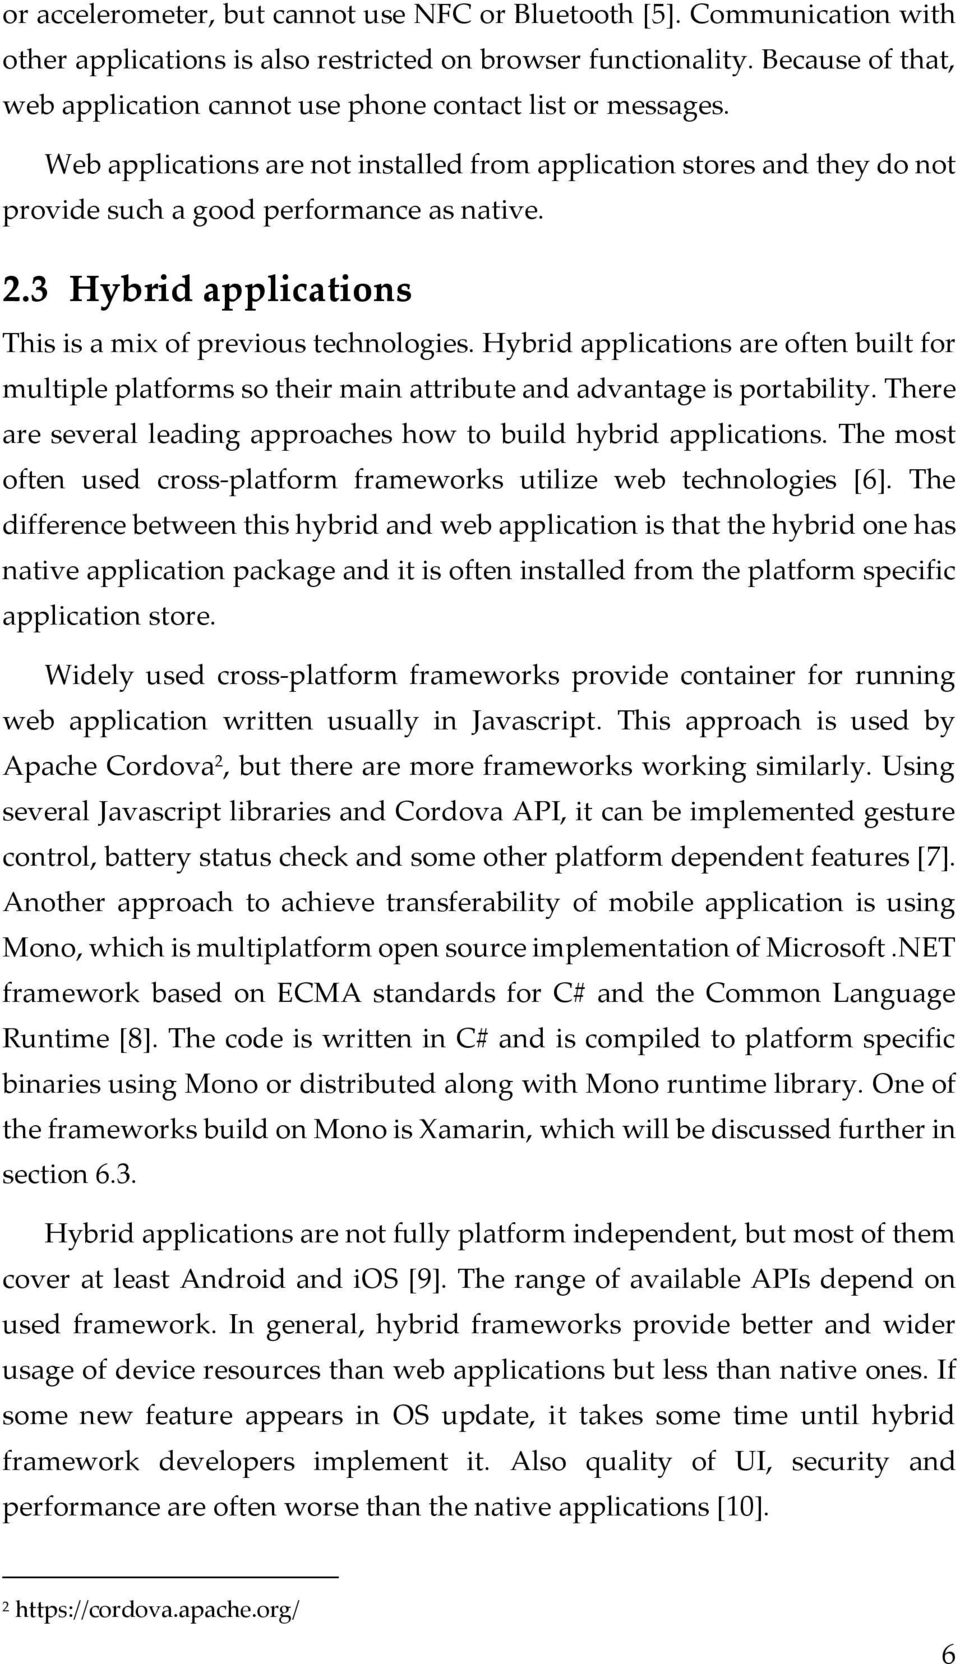 3 Hybrid applications This is a mix of previous technologies. Hybrid applications are often built for multiple platforms so their main attribute and advantage is portability.